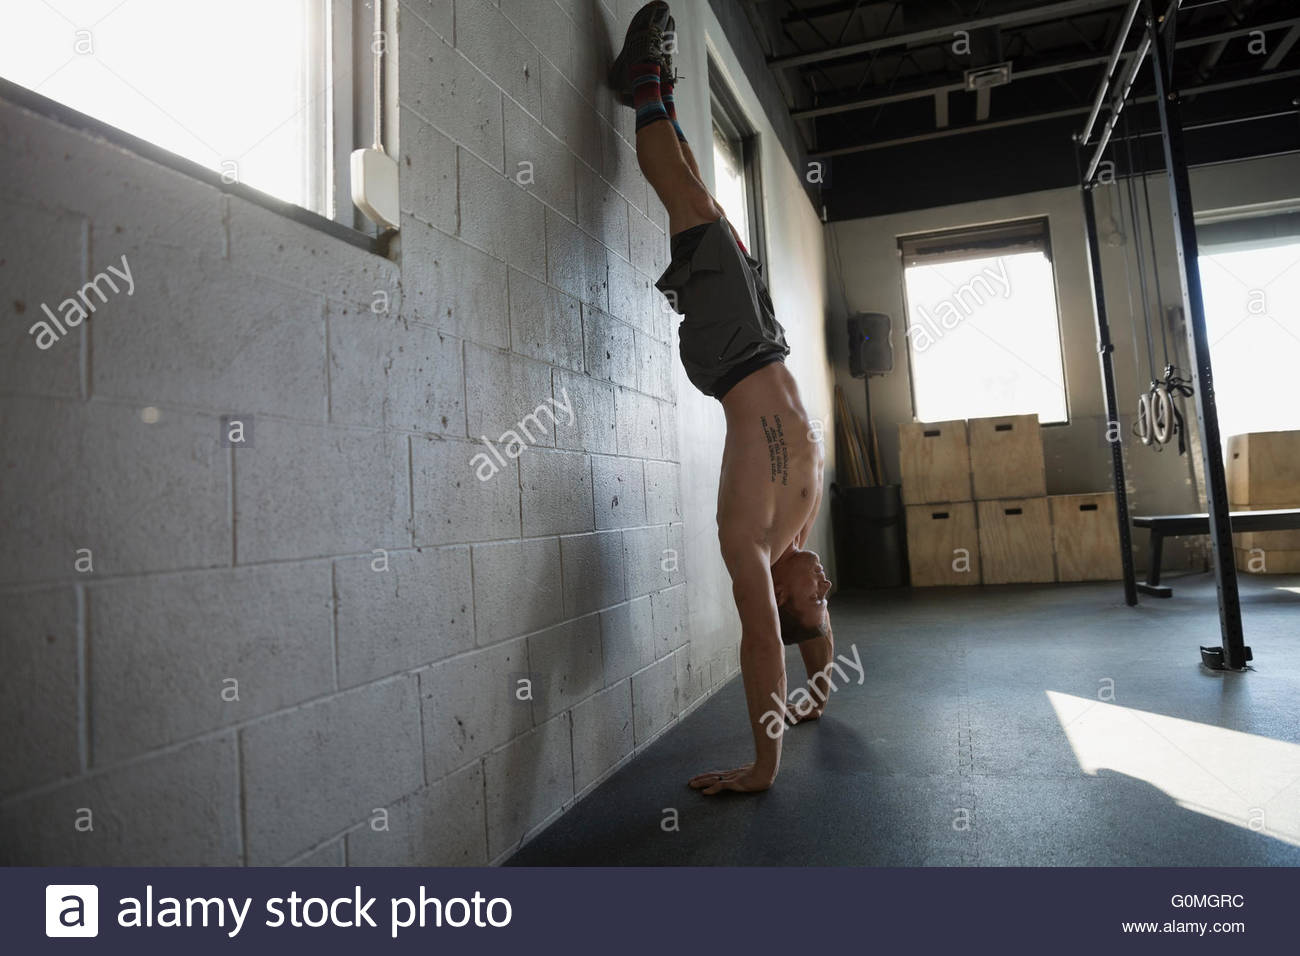 Bare chested man doing handstand at gym wall - Stock Image